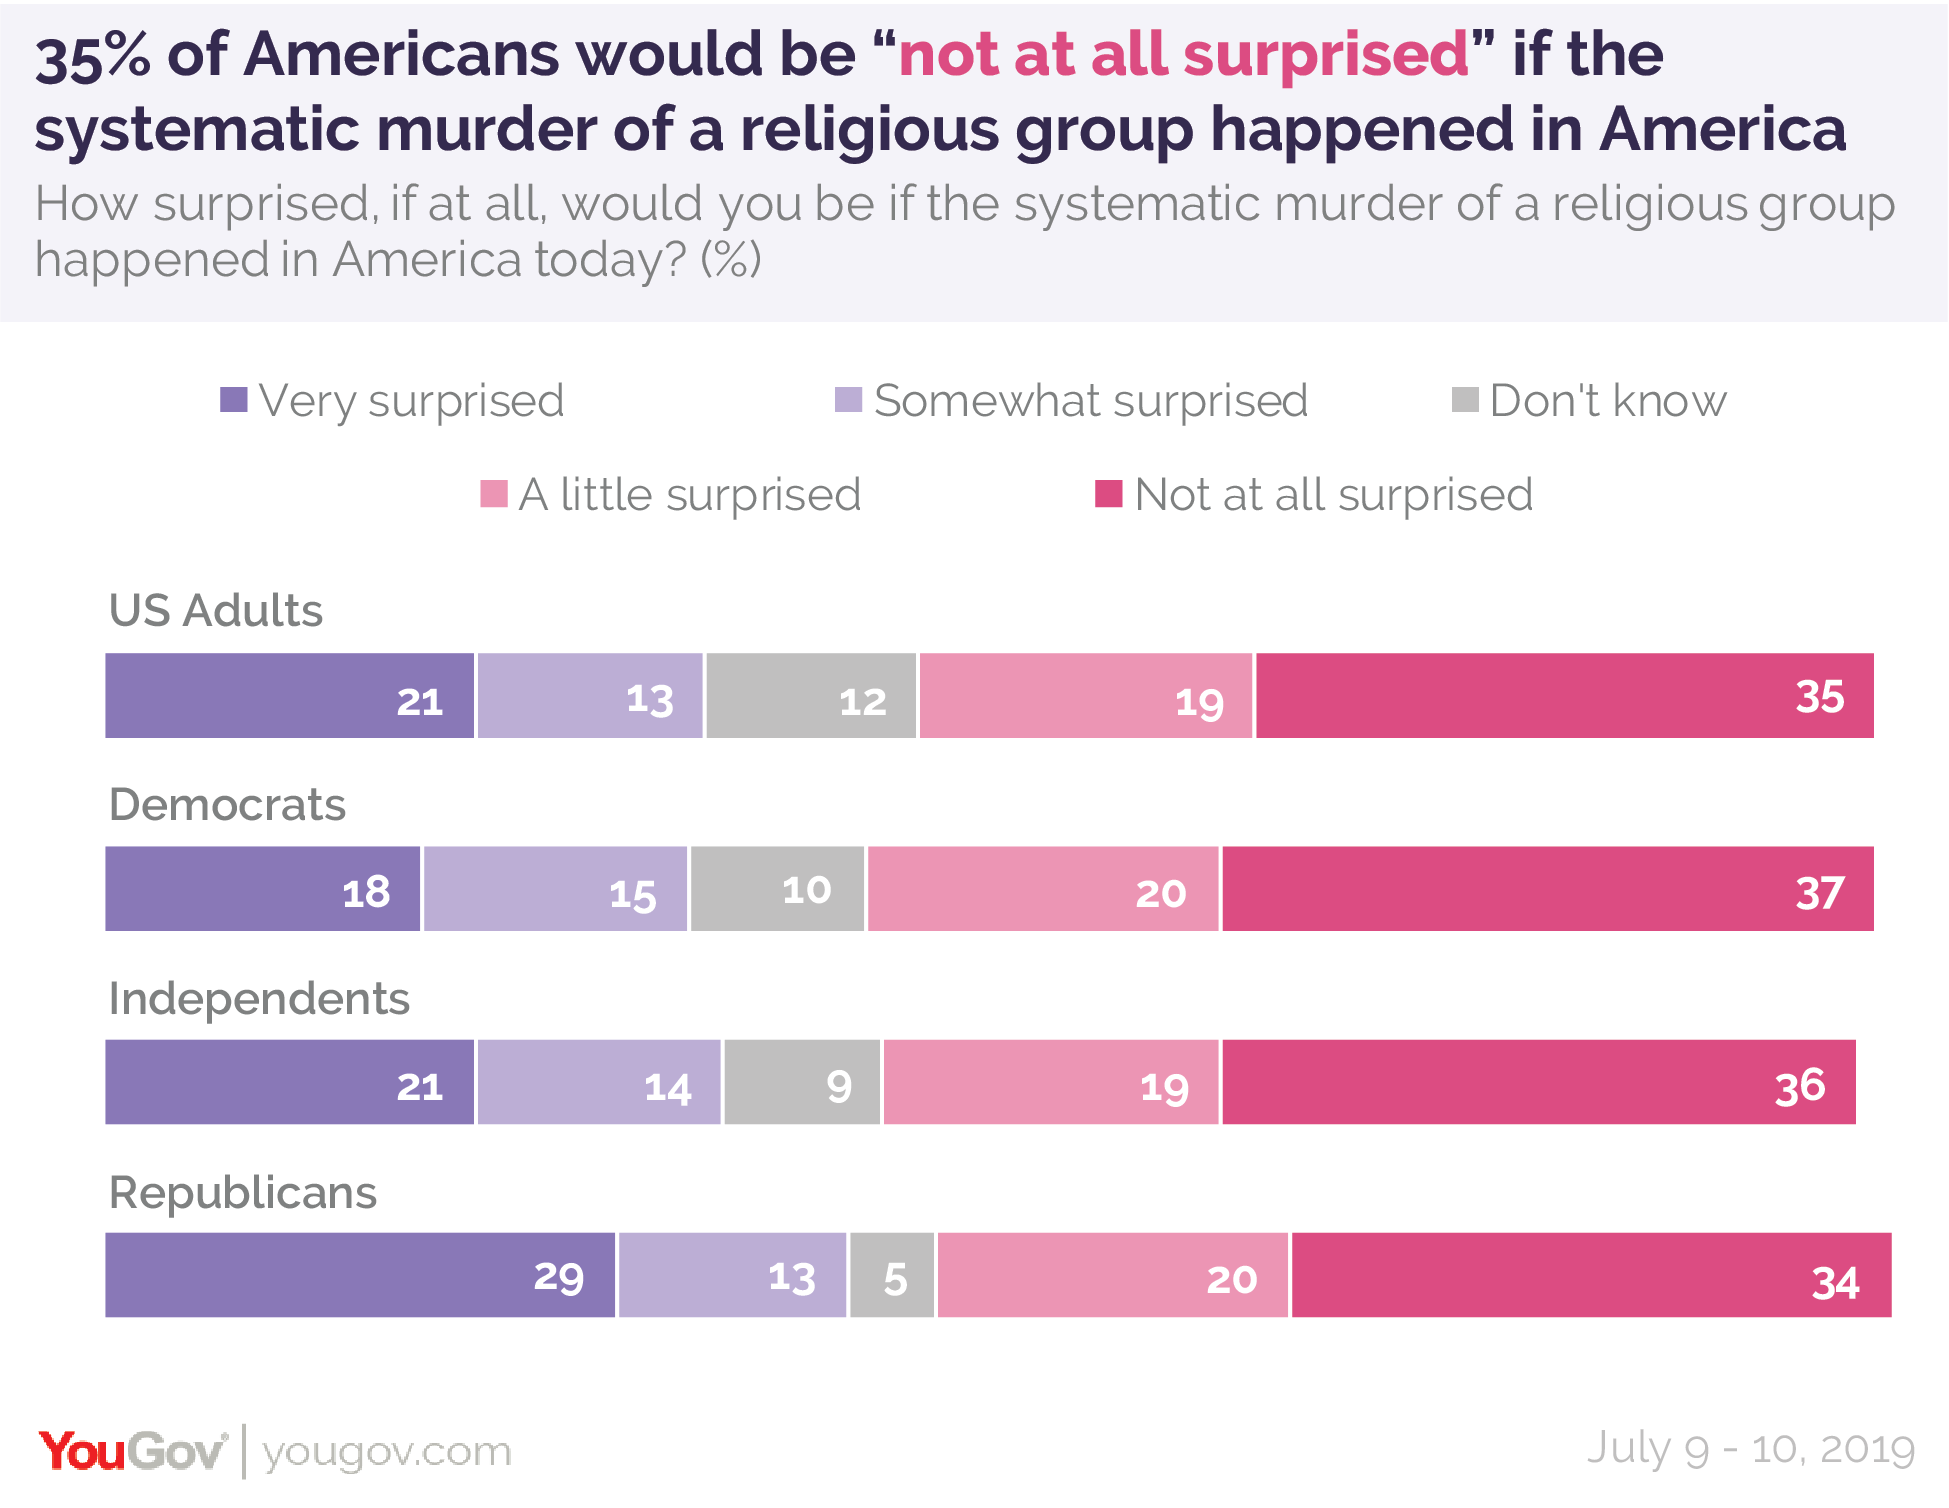 "35% of Americans would be ""not at all surprised"" if the systematic murder of a religious group happened in America today"